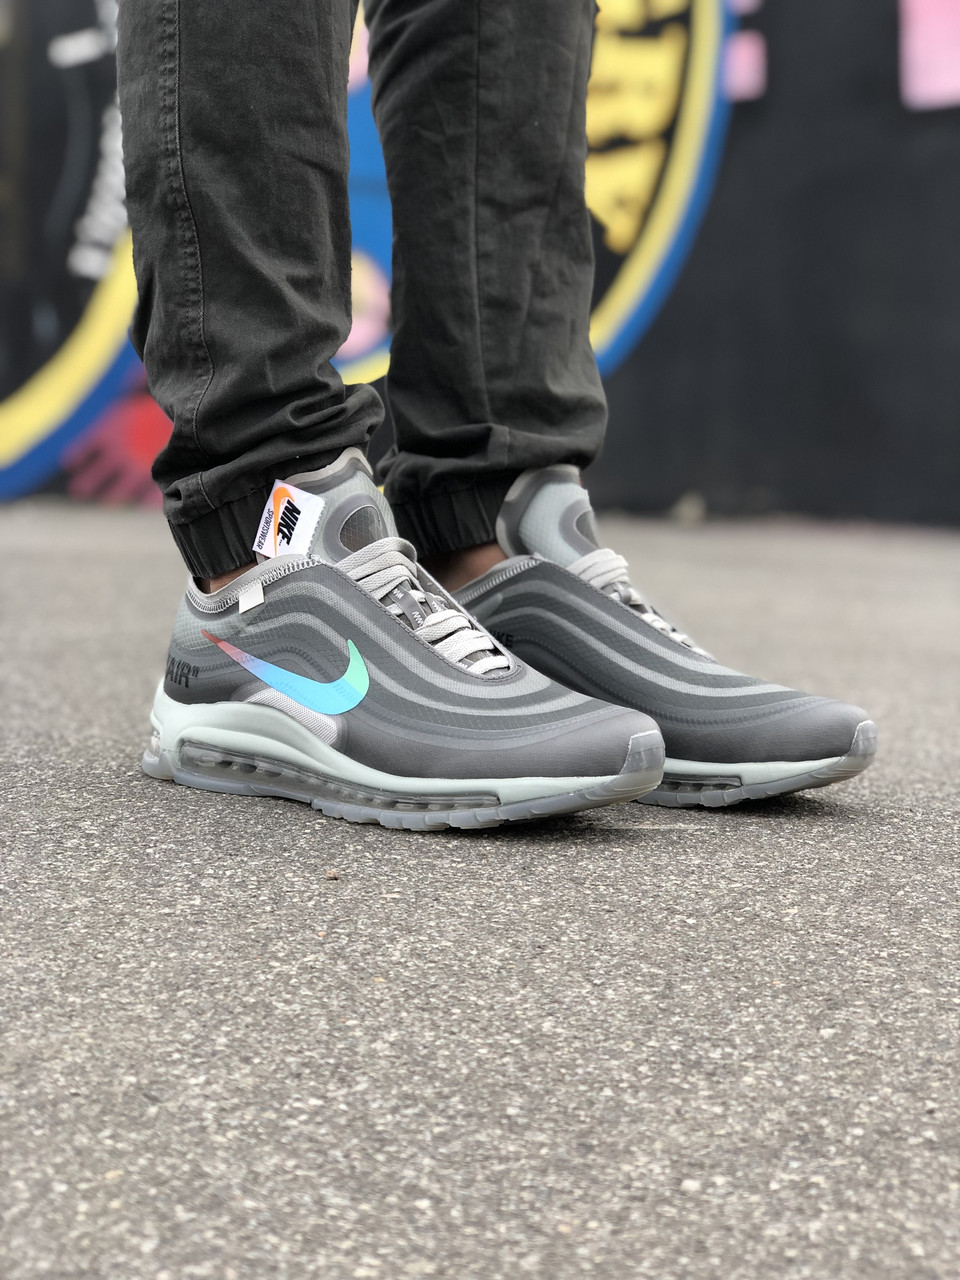 Кроссовки Off-White x Nike Air Max 97 Menta Серые